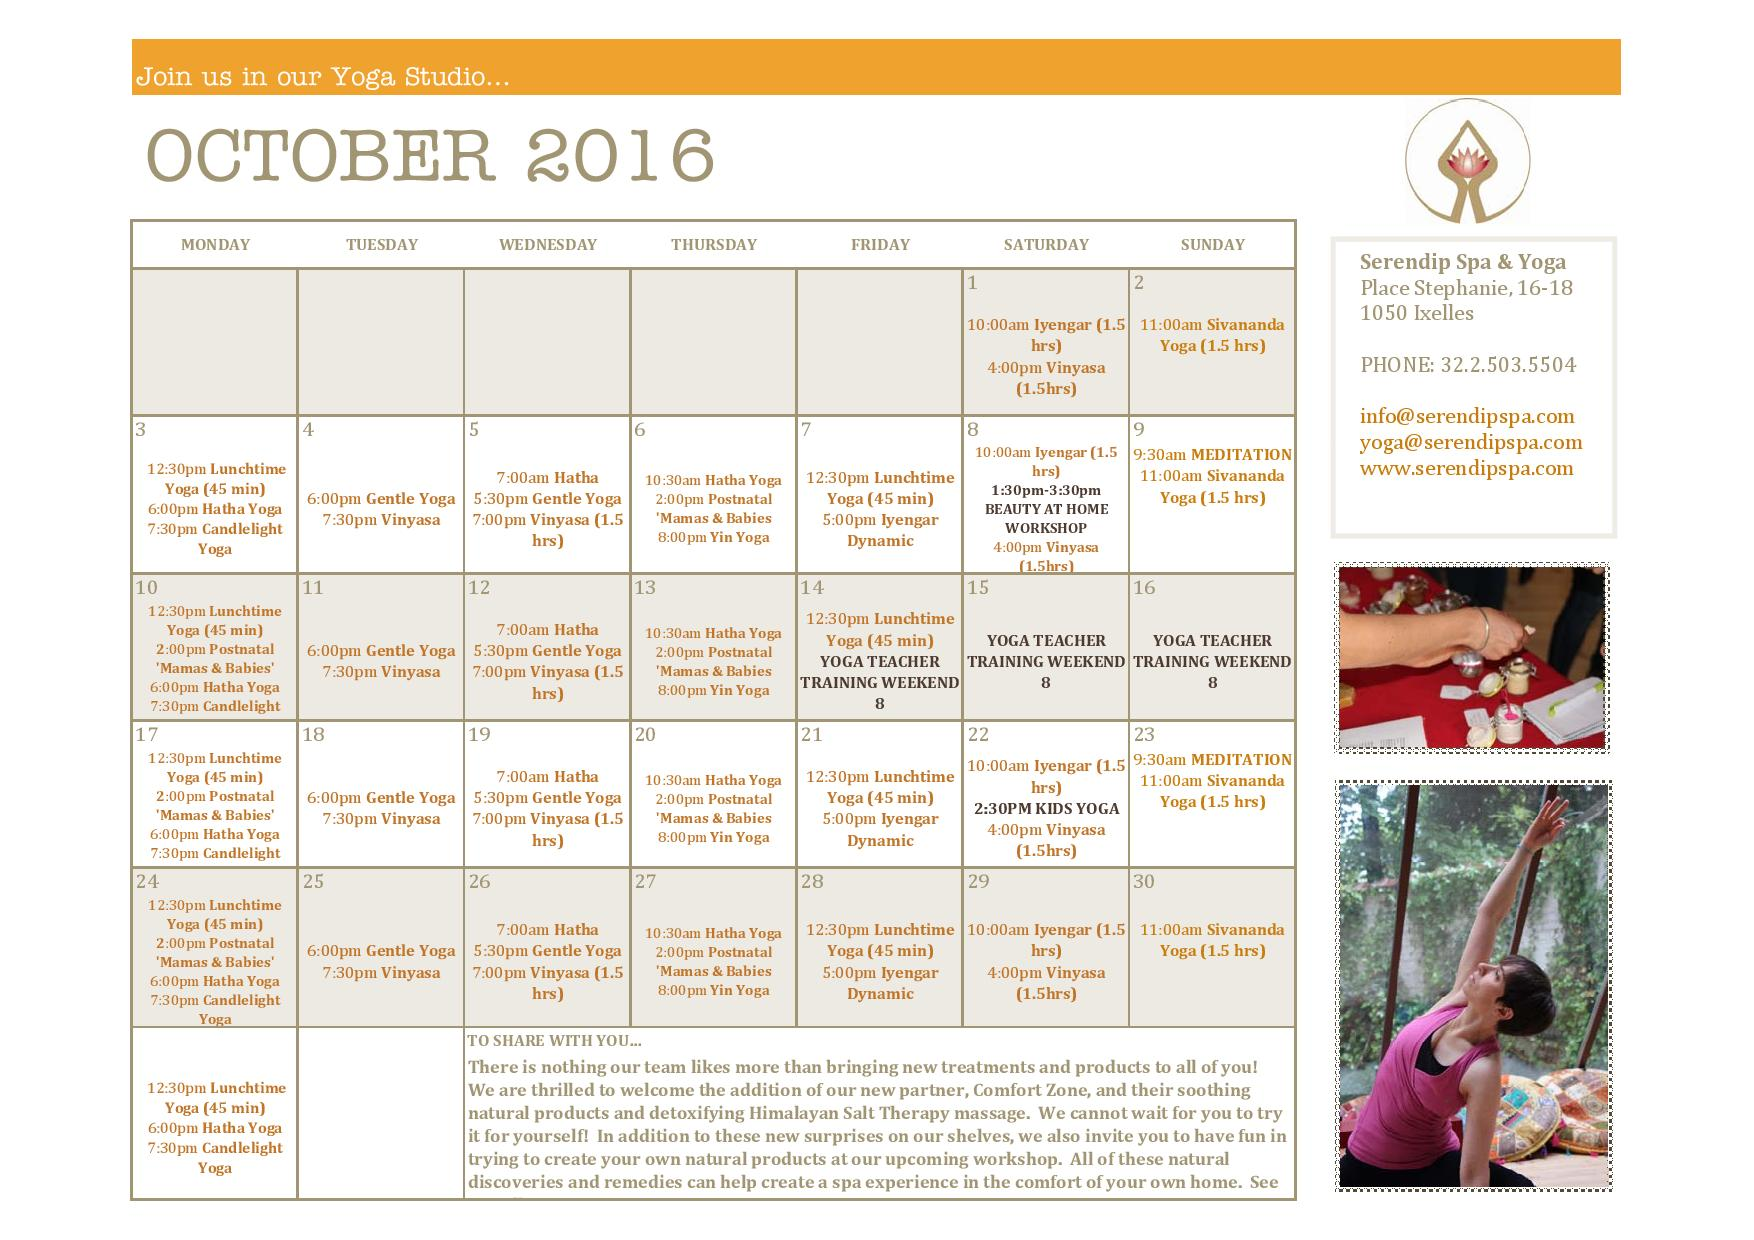 Serendip Spa and Yoga Calendar 2016_October_FRONT A4-page-001.jpg